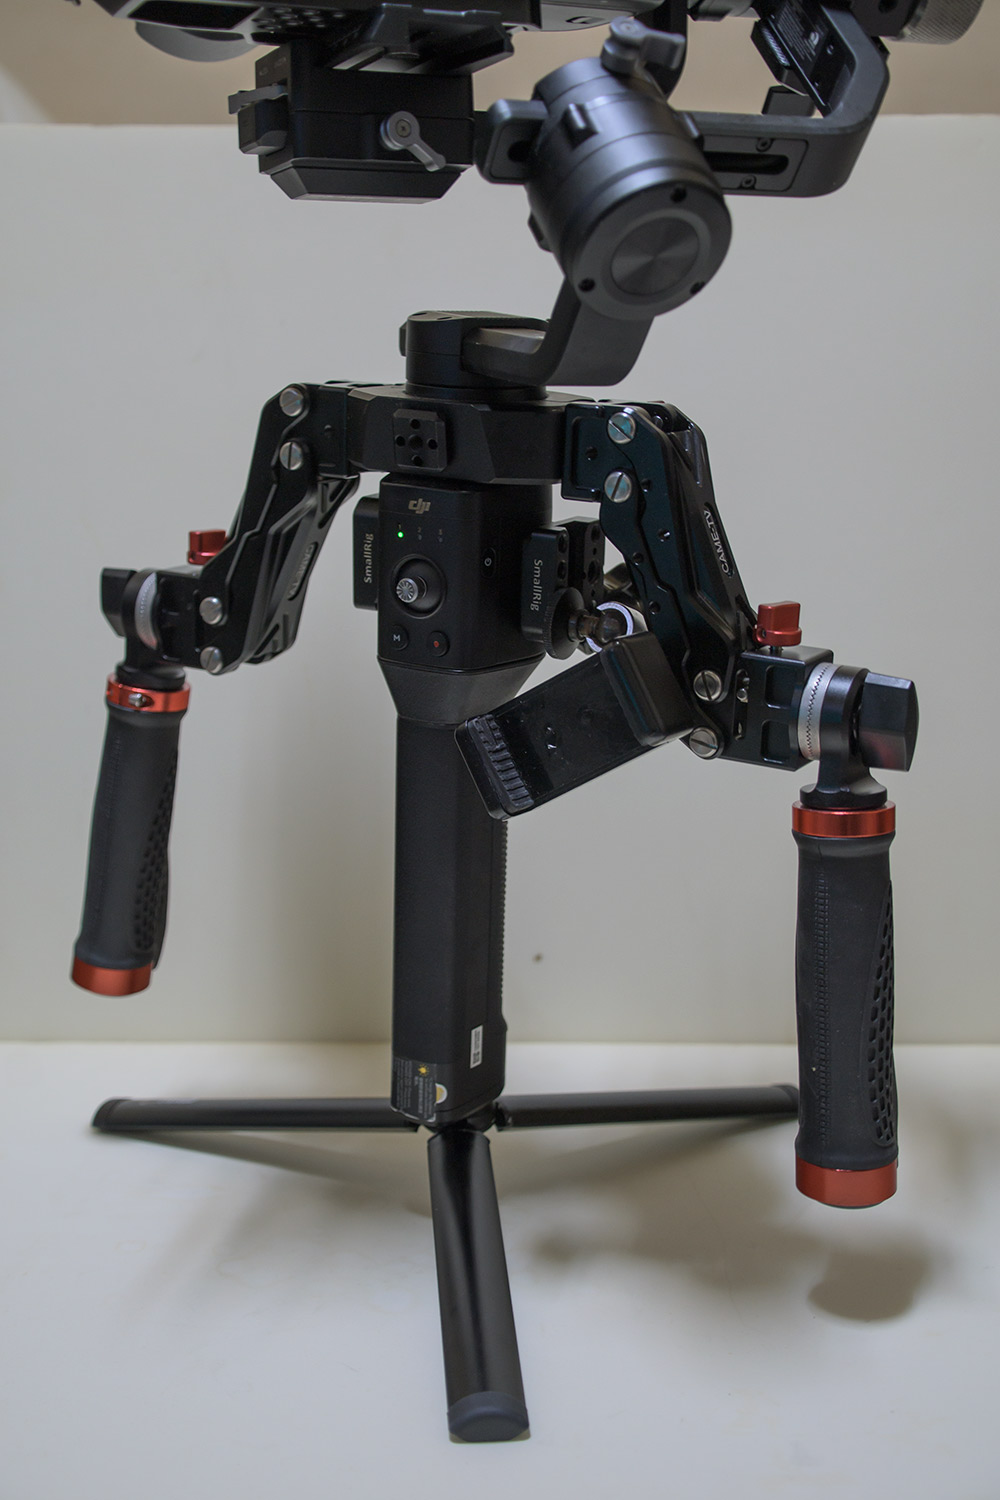 CAME-TV Dual Adjustable Spring Handles for DJI RONIN S/RSC2/RS2 × 1